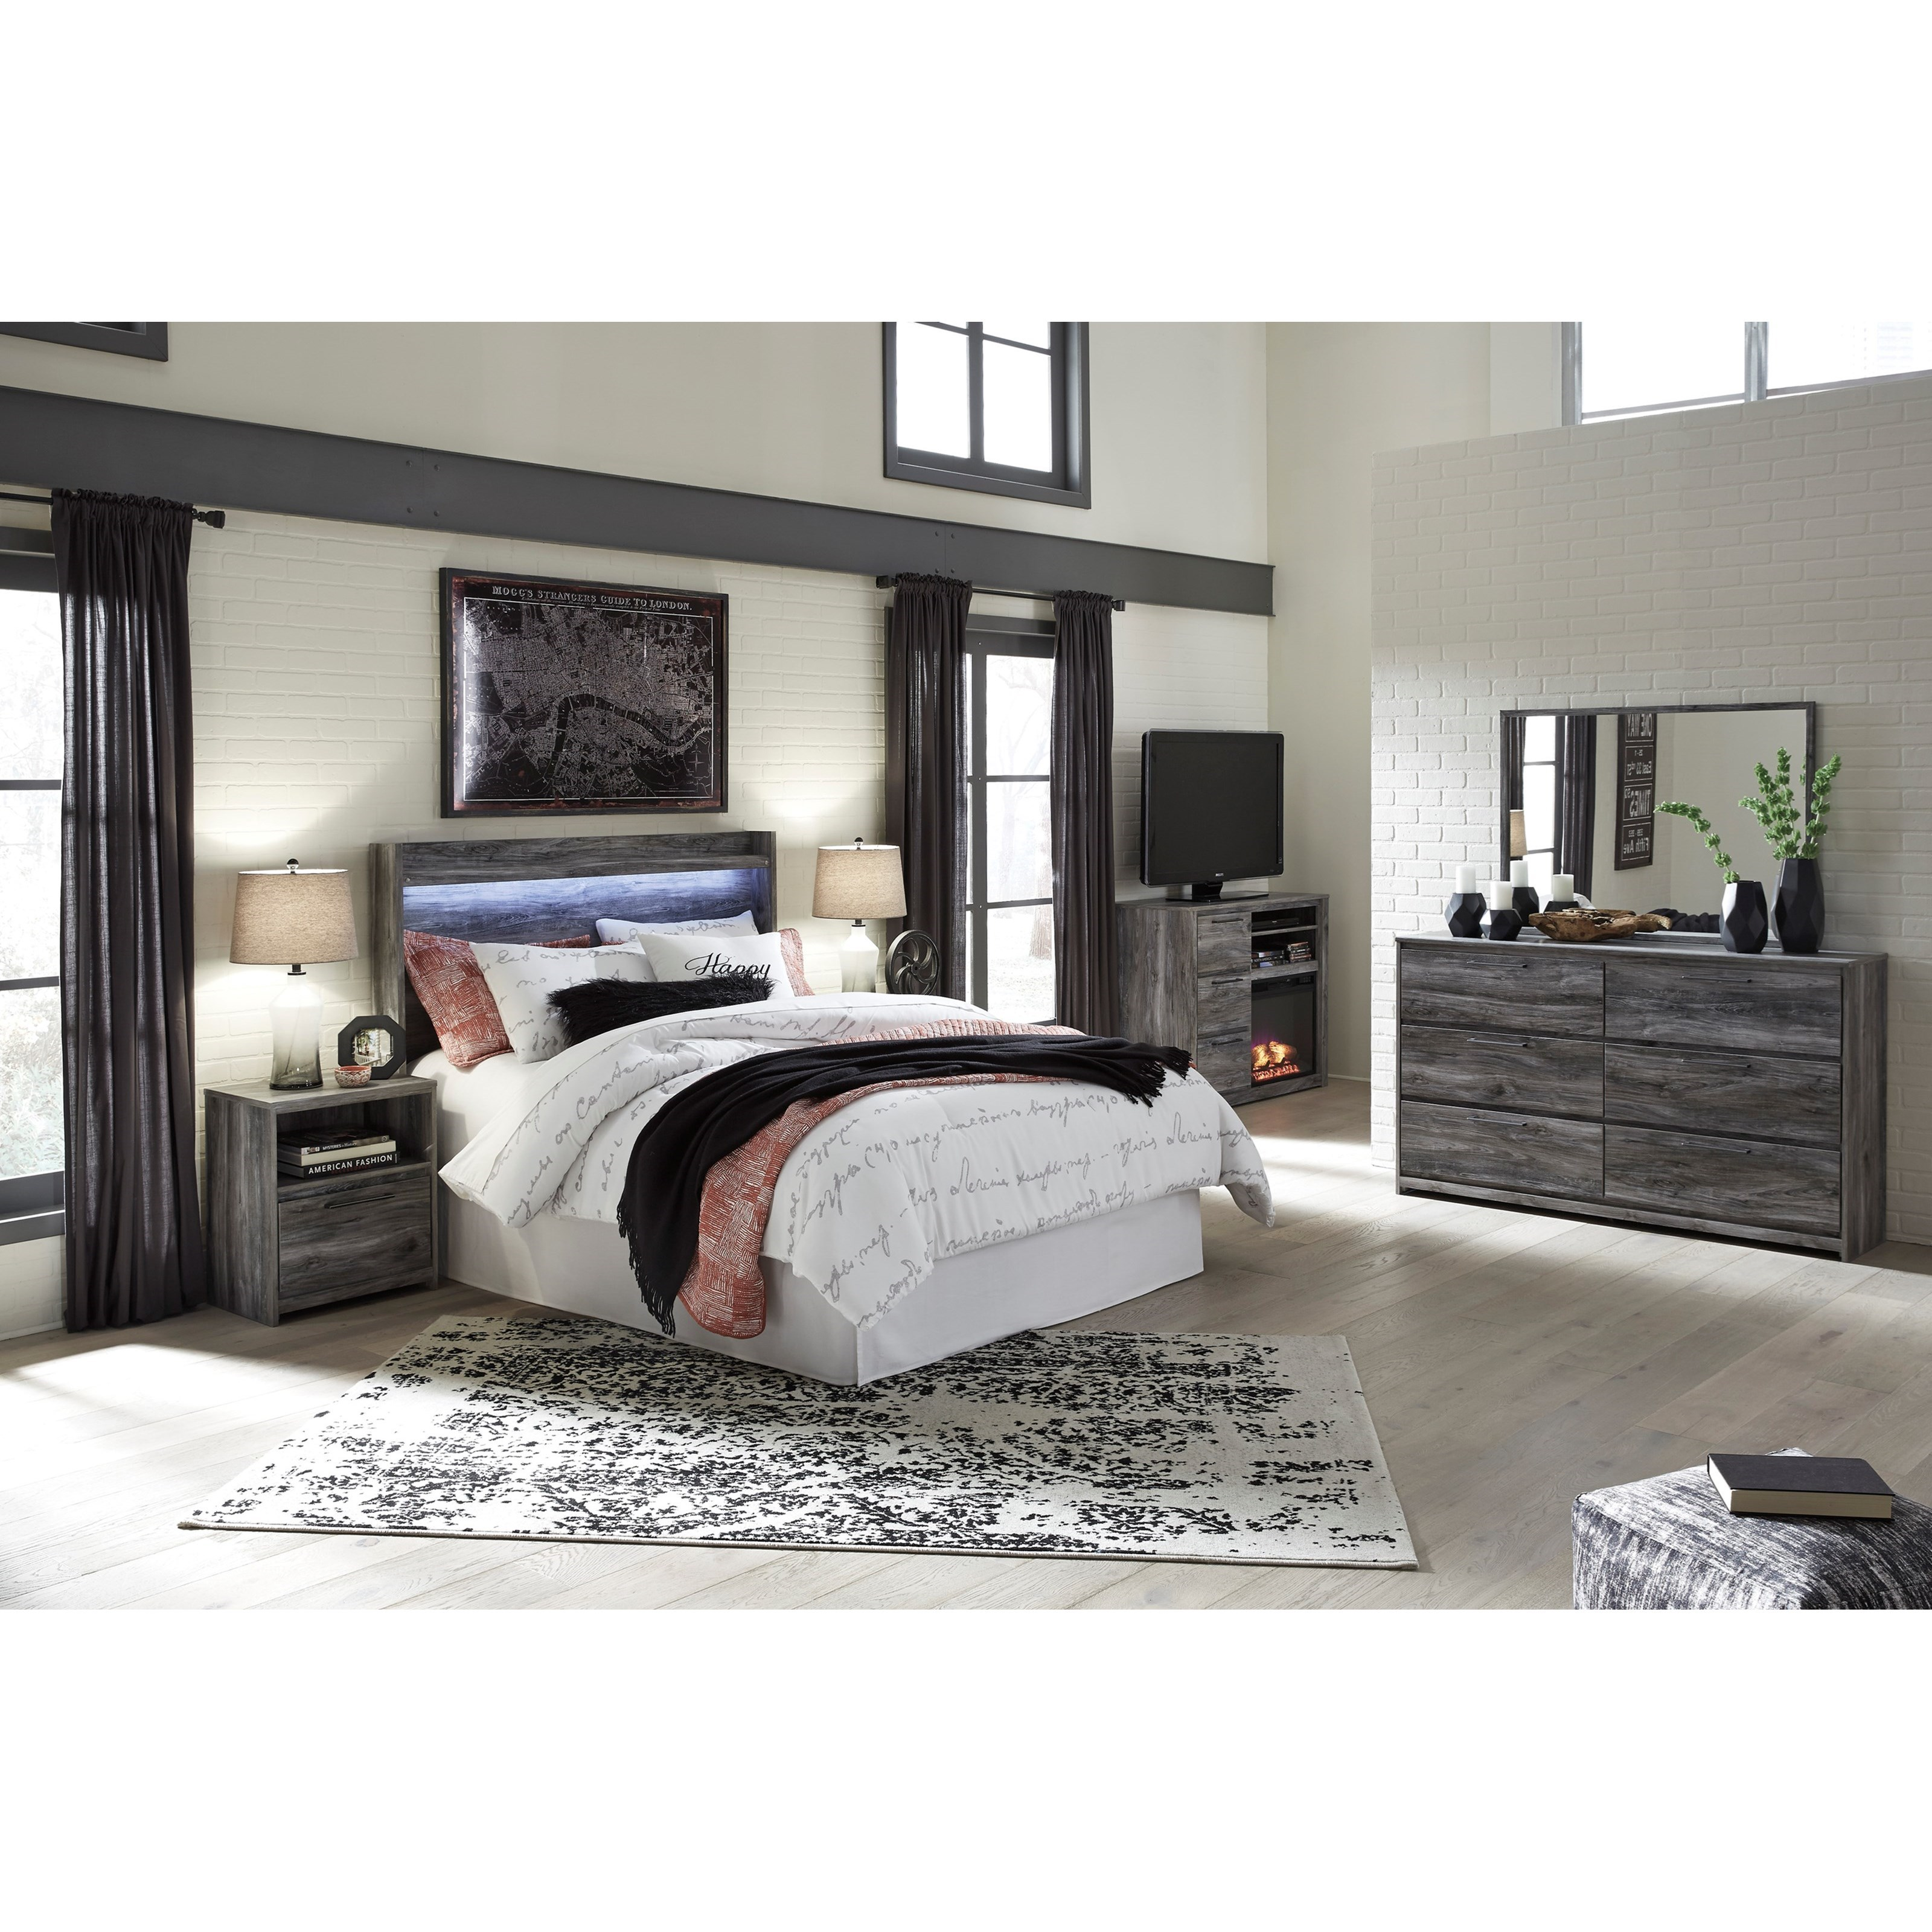 Signature design by ashley baystorm queen bedroom group for Bedroom groups